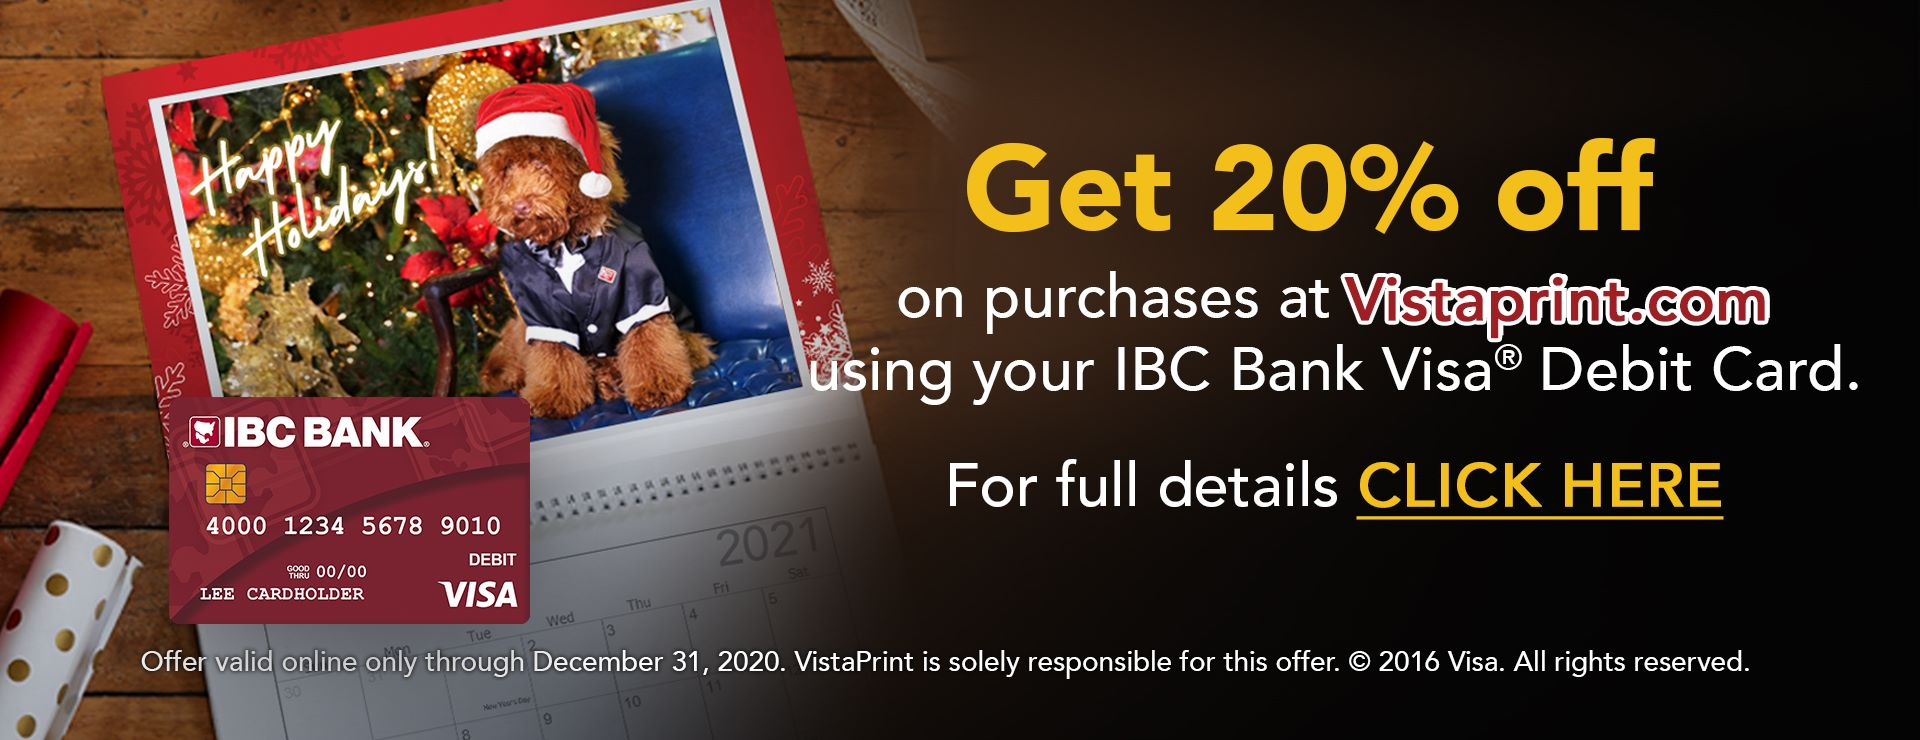 Ibc Bank Home Personal Business And International Banking